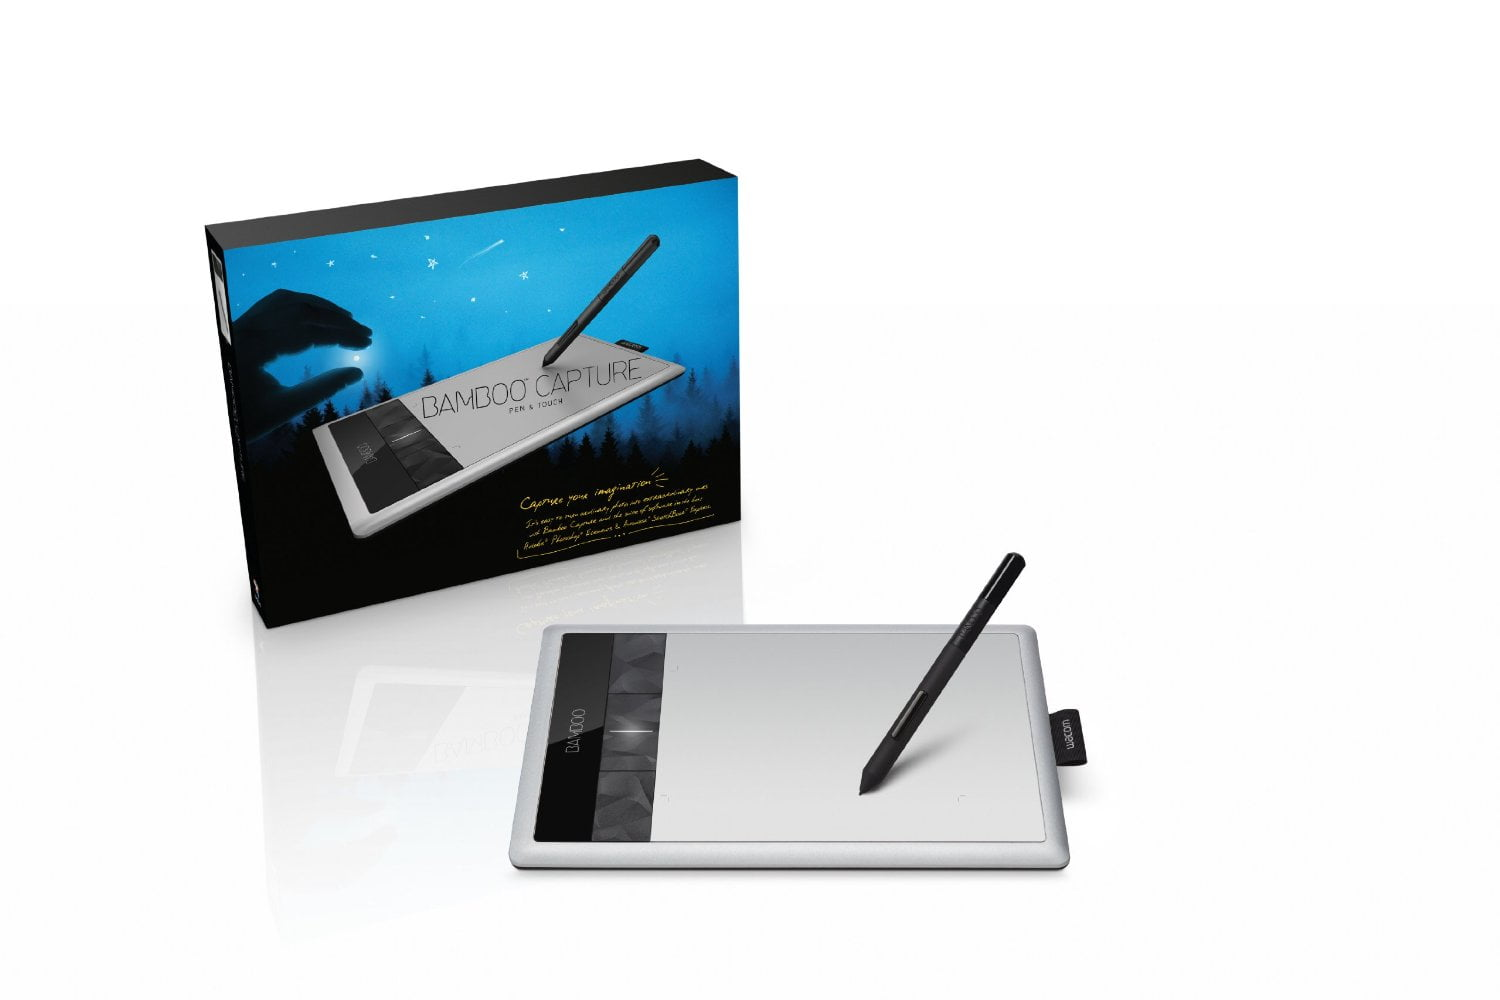 Bamboo Tablet Wacom Bamboo Capture Pen And Touch Tablet Cth470 The